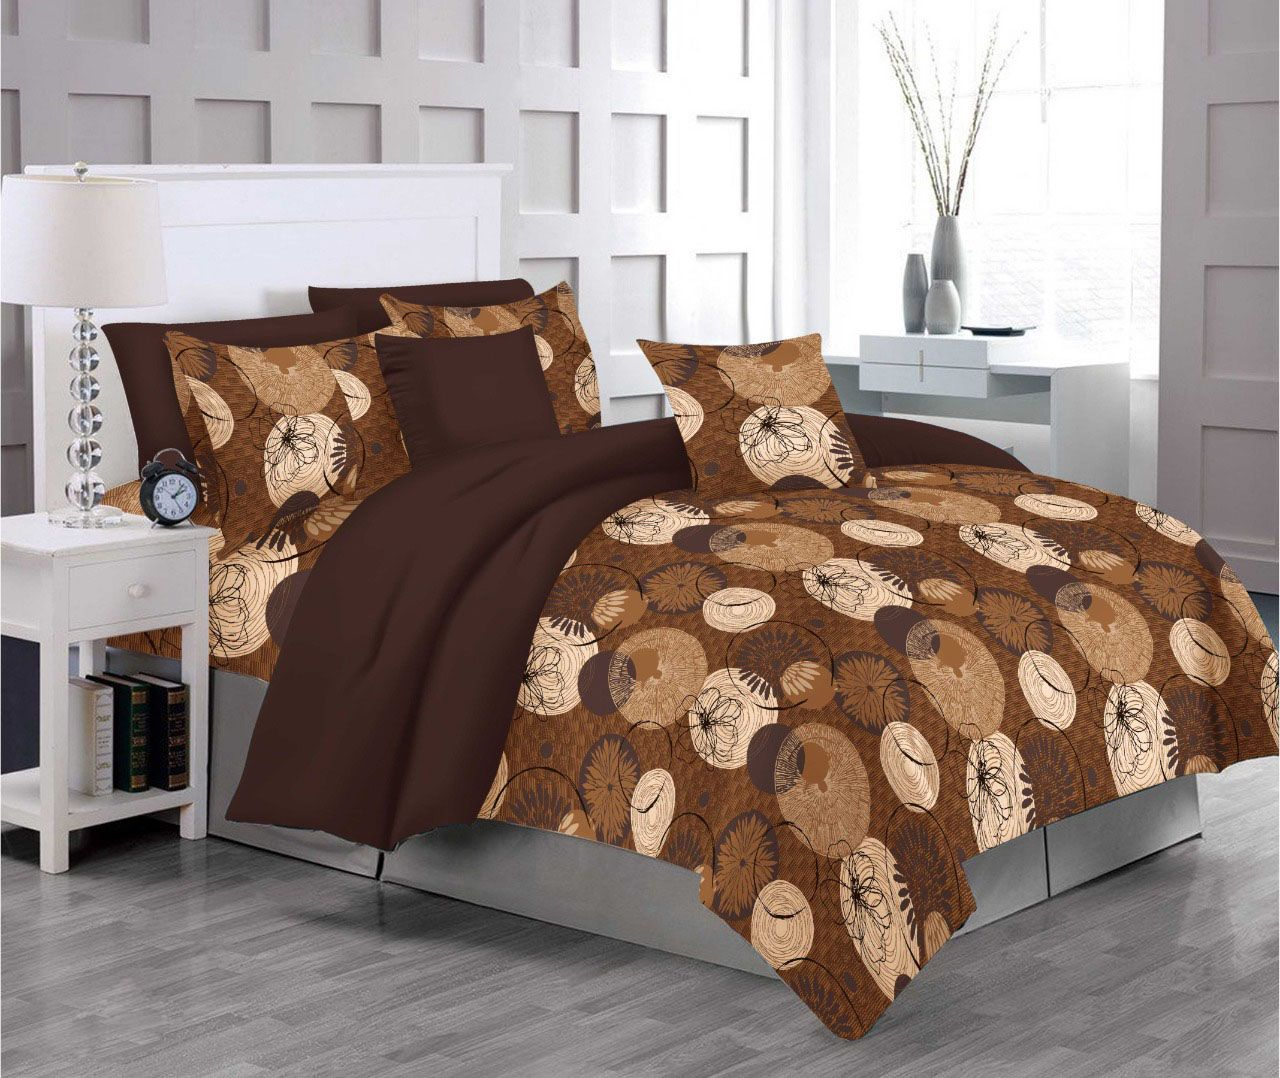 Printed Hotel Bed Sheets Suppliers In Kolkata In 2020 Hotel Bed Bed